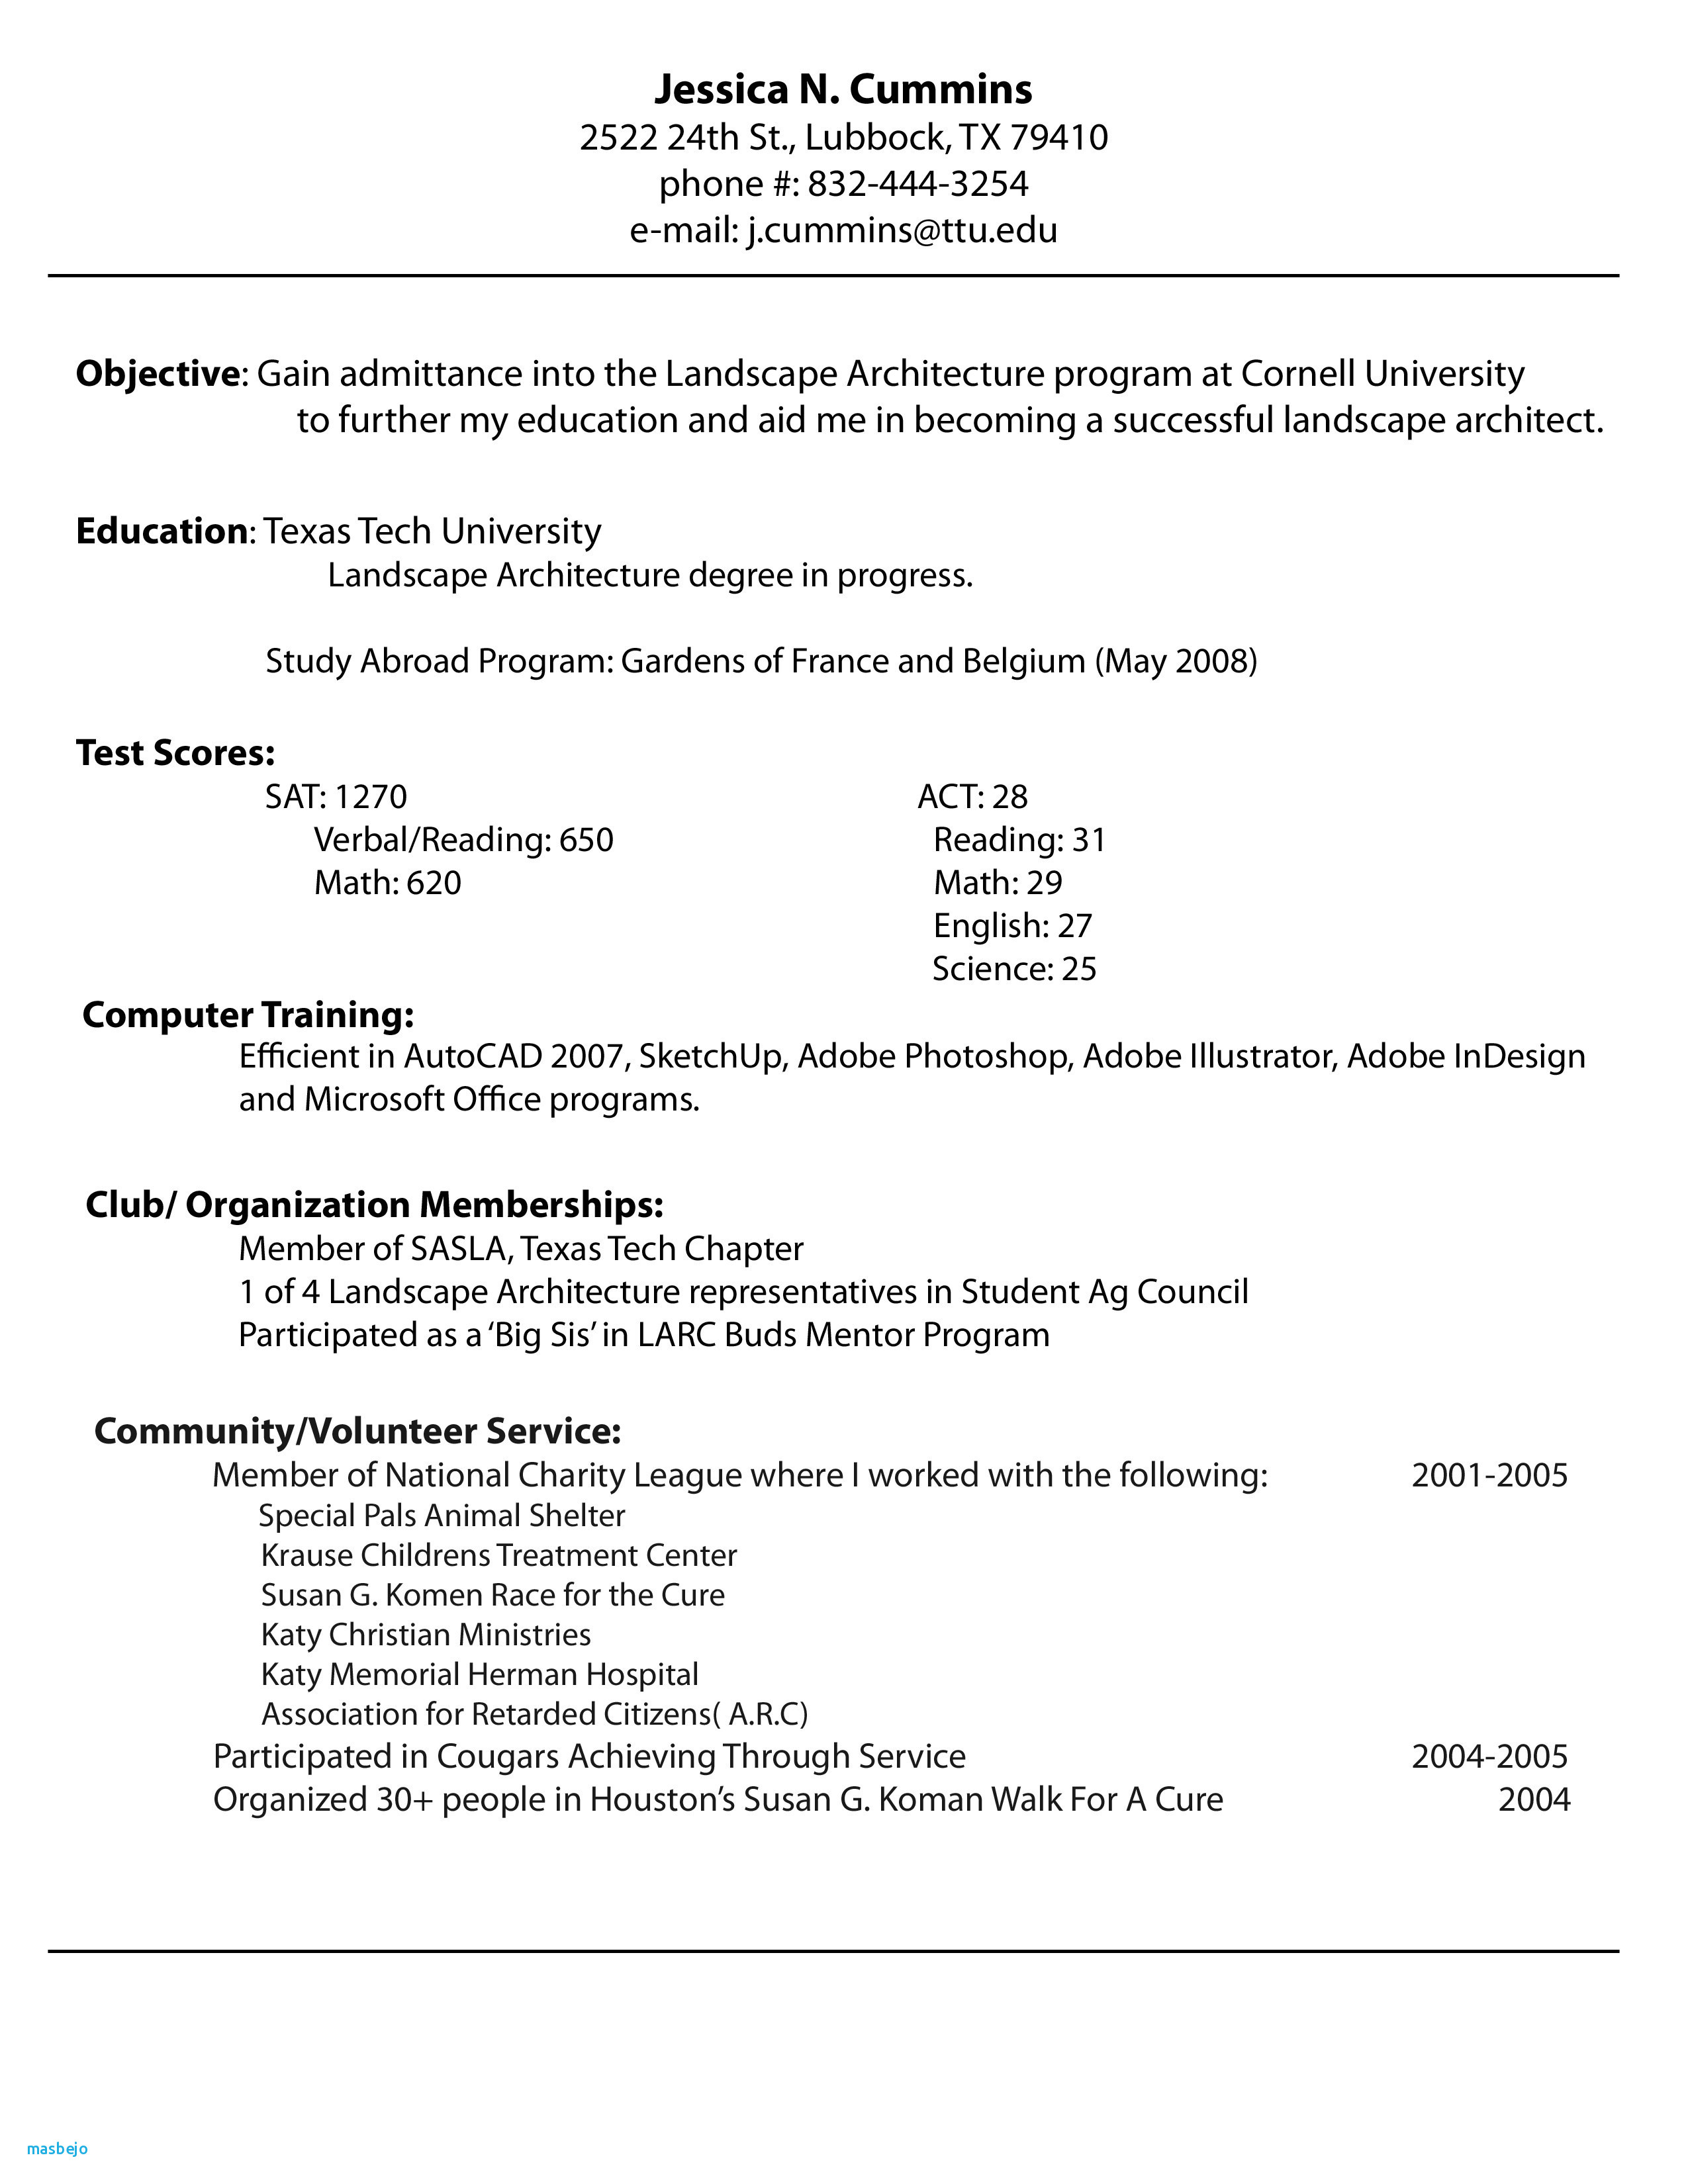 Landscaping Resume Examples - Landscaping Resume Examples Landscape Owner Resume Manqal Hellenes